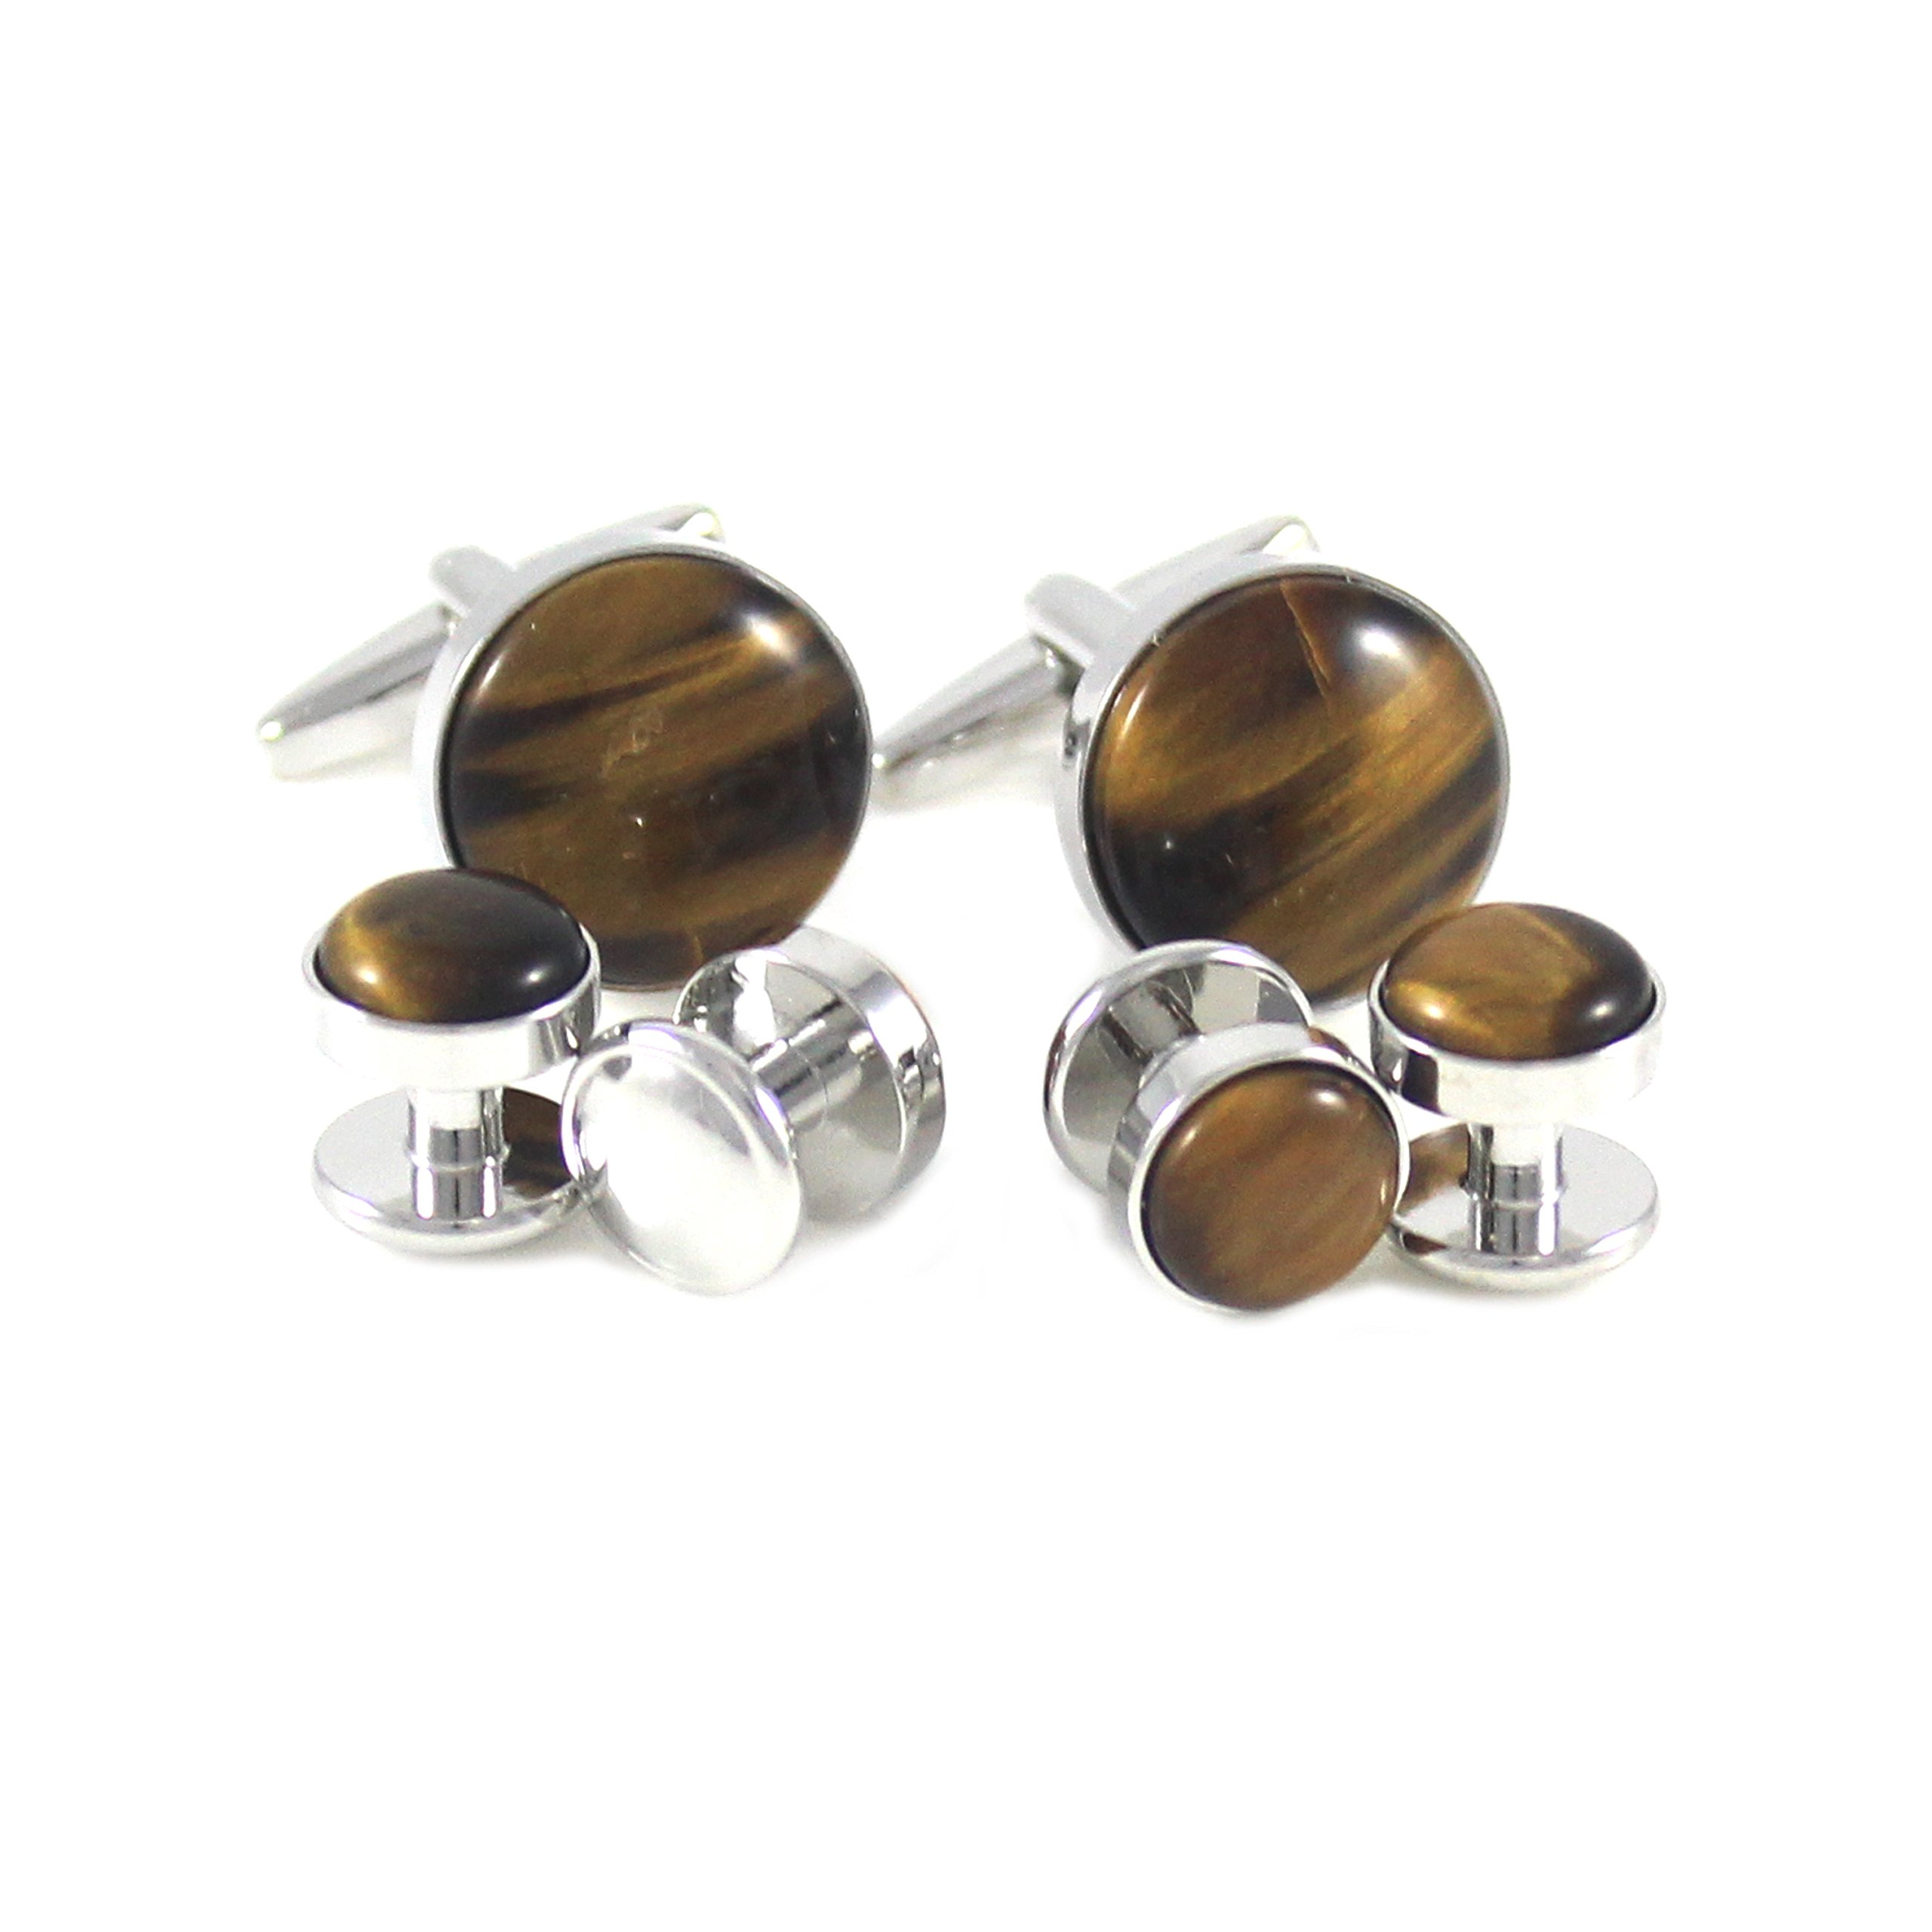 MENDEPOT Classic Silver Tone Round Brown Stone Cuff Link And Shirt Studs Formal Wear Set With Box